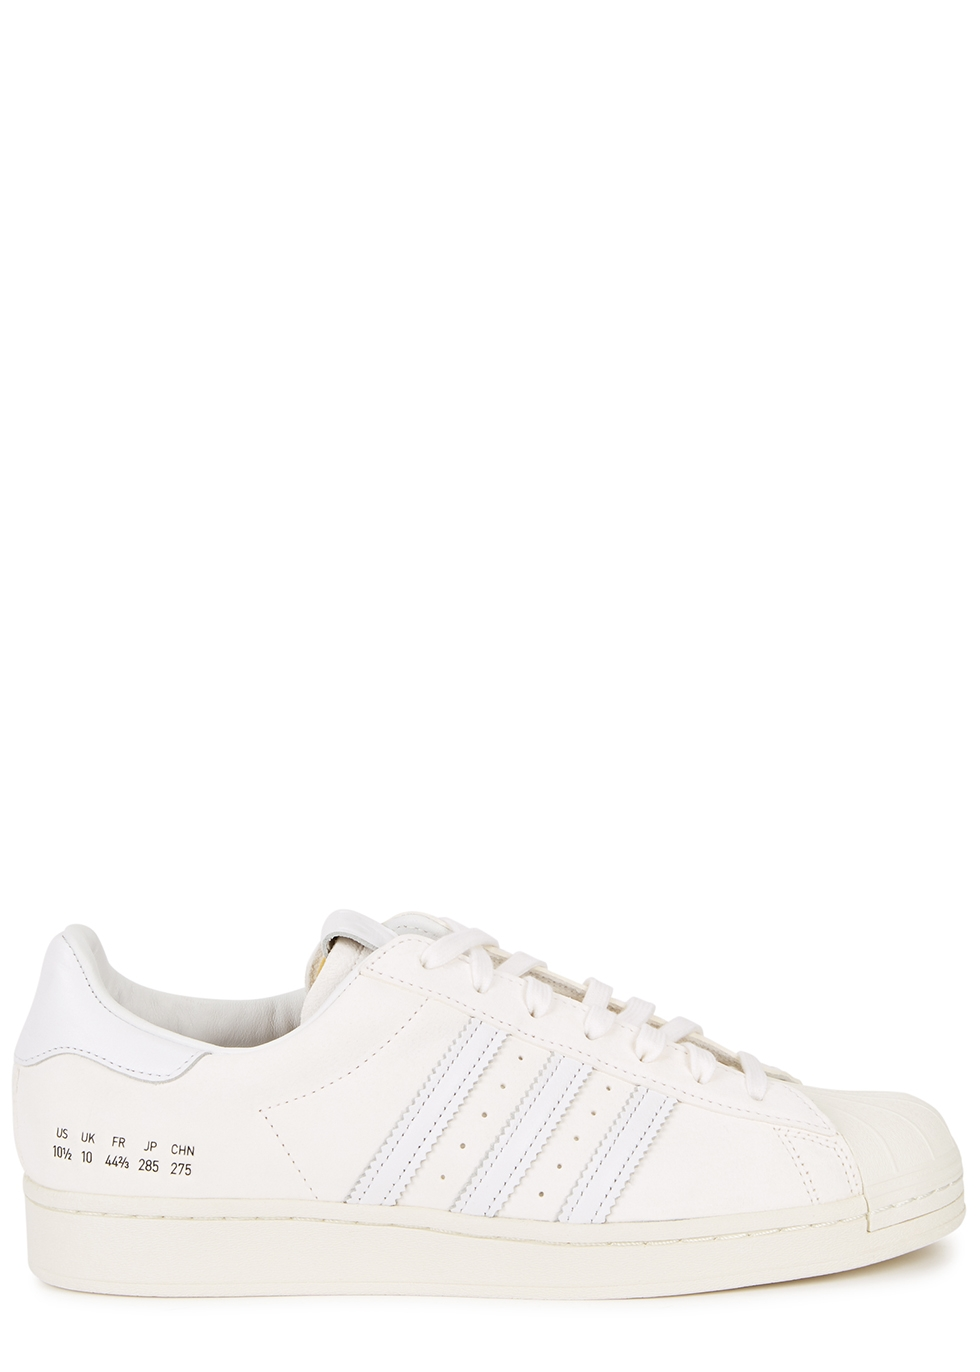 Superstar white suede sneakers